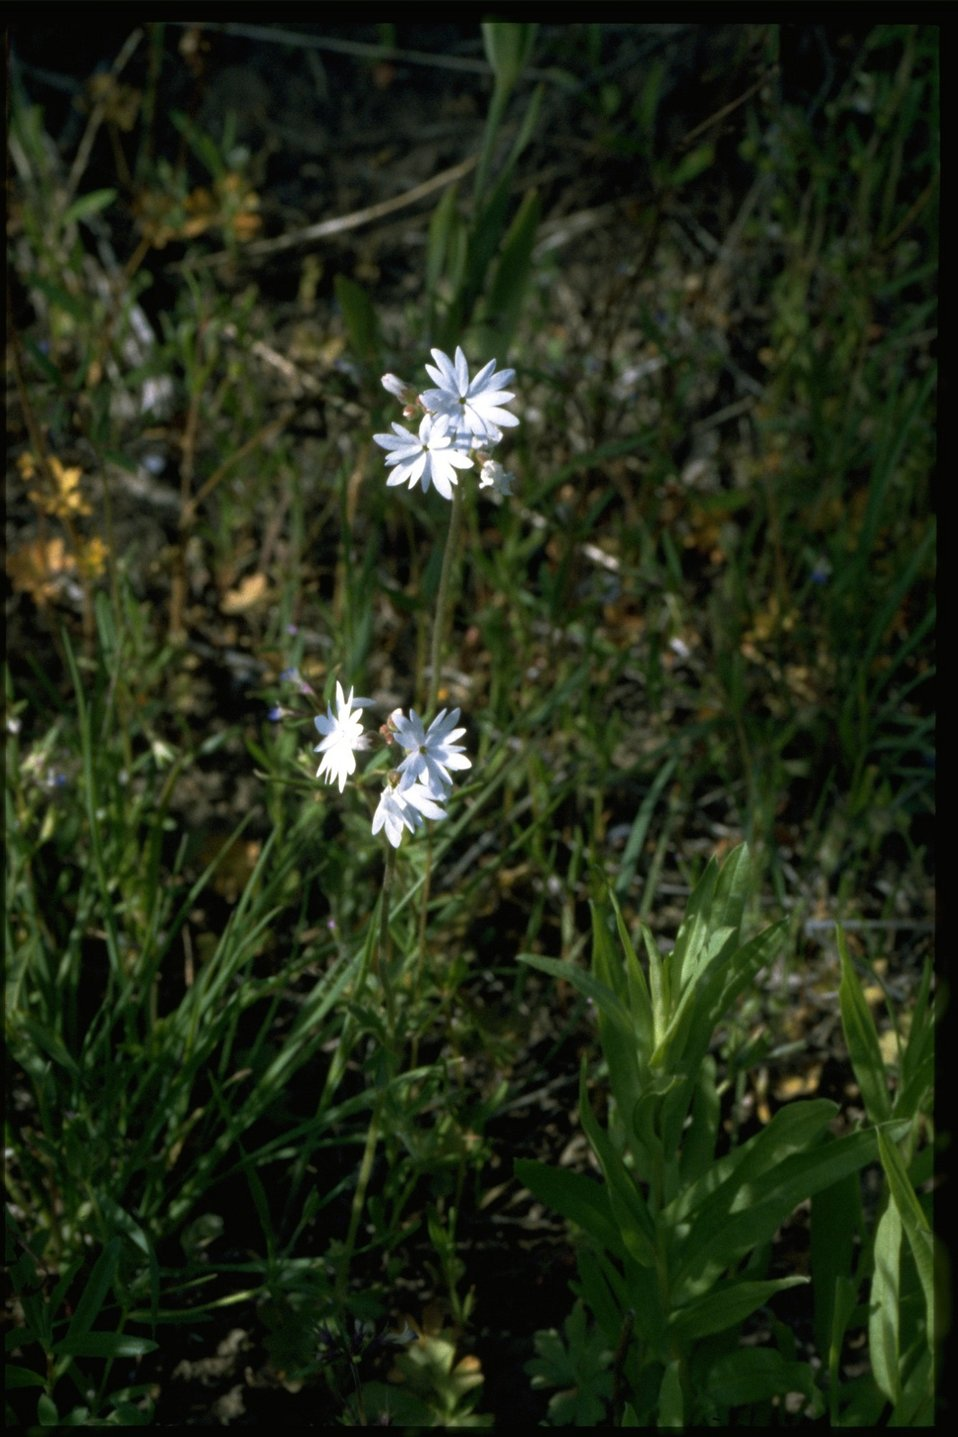 Farshot of Prairie Star wildflower (Lithophragma Sp.)